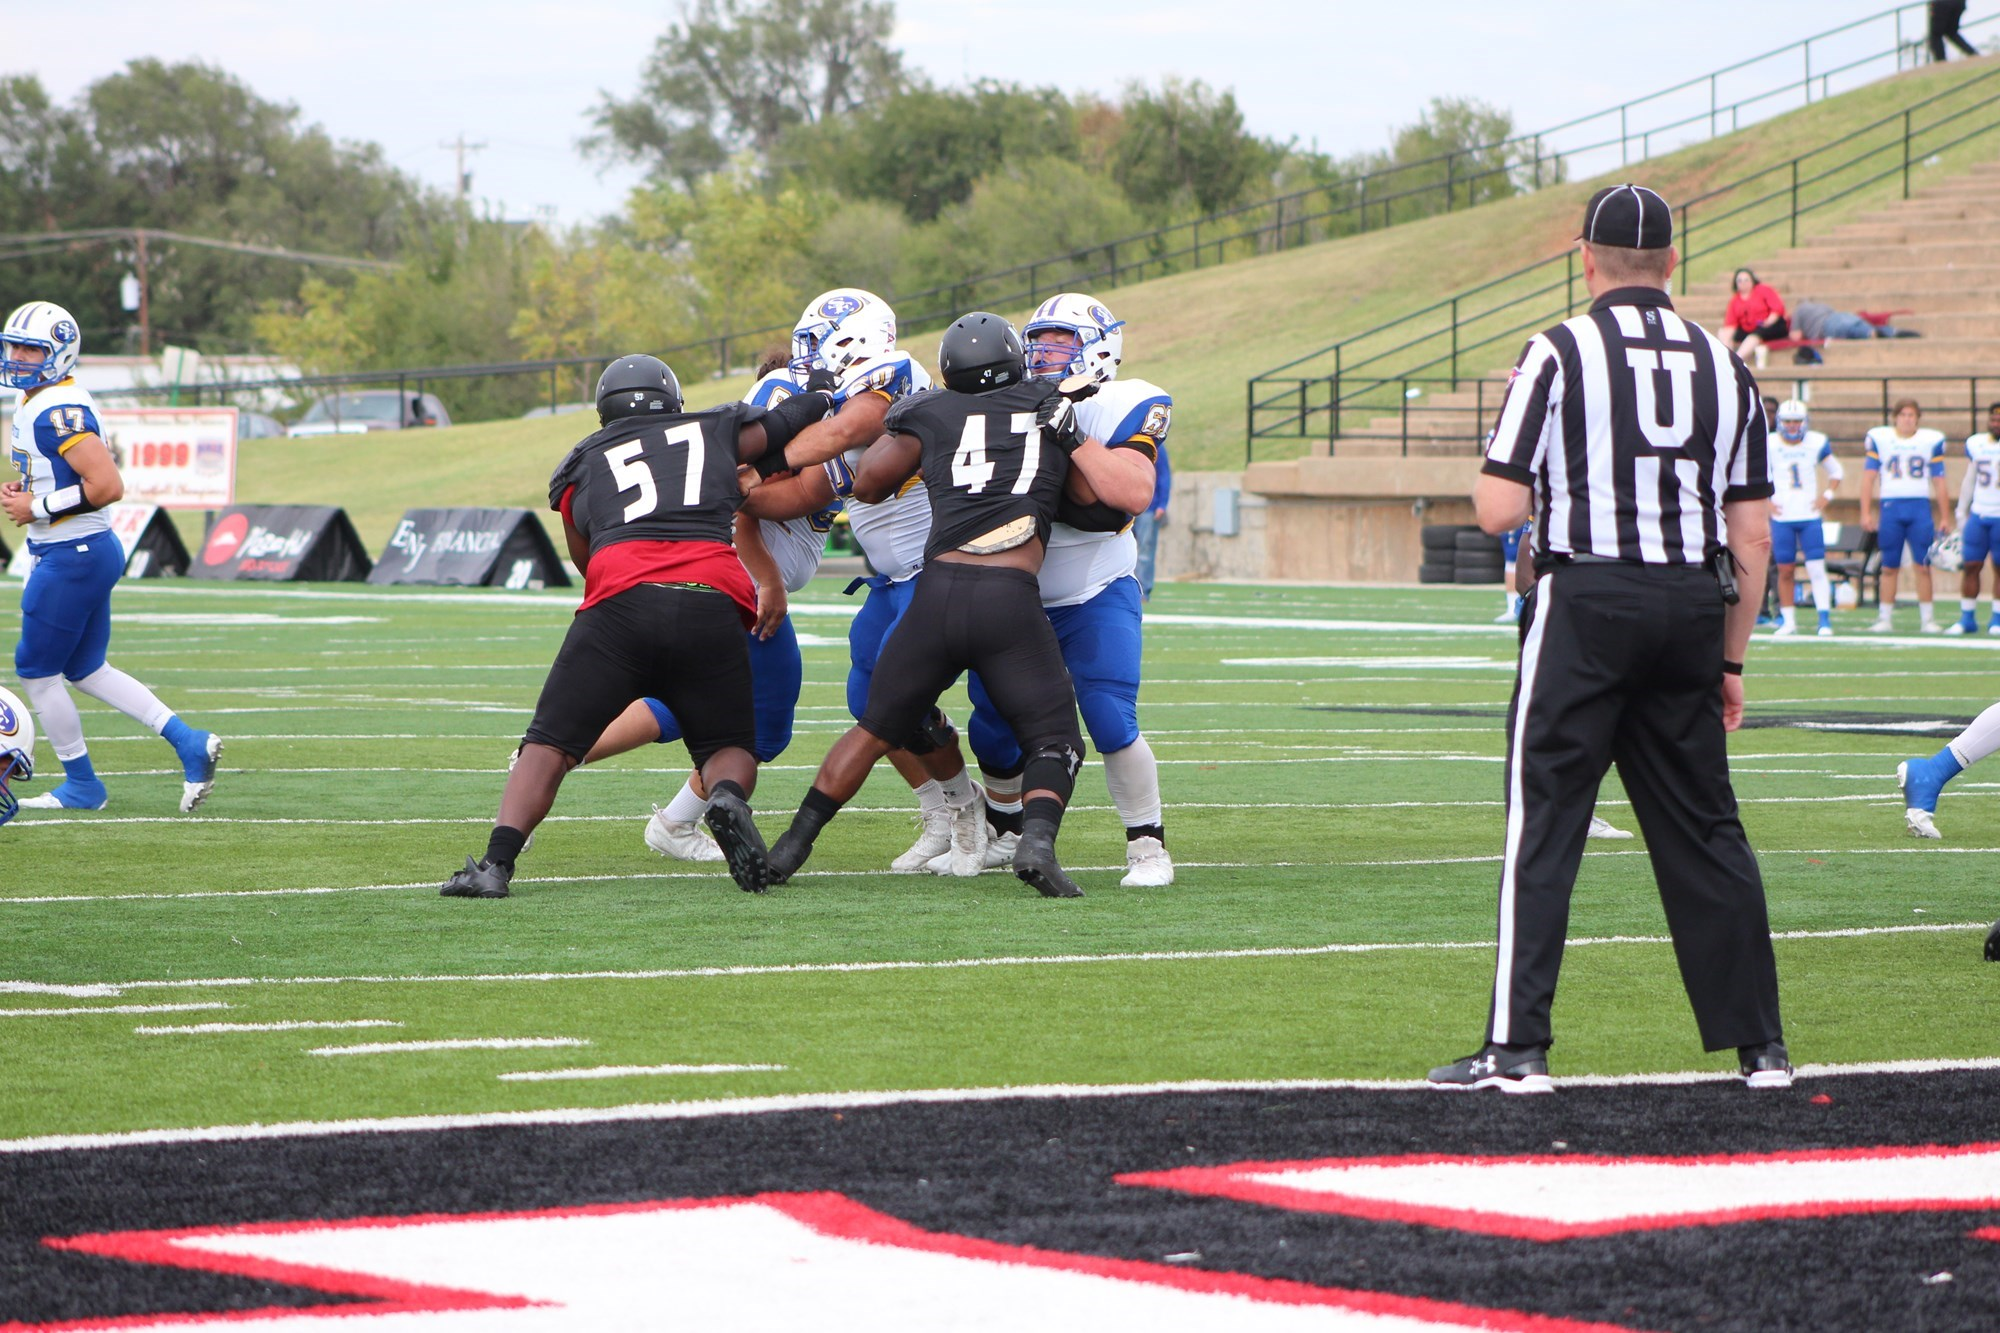 Tyreese Jackson - 2019 - Football - Northwestern Oklahoma